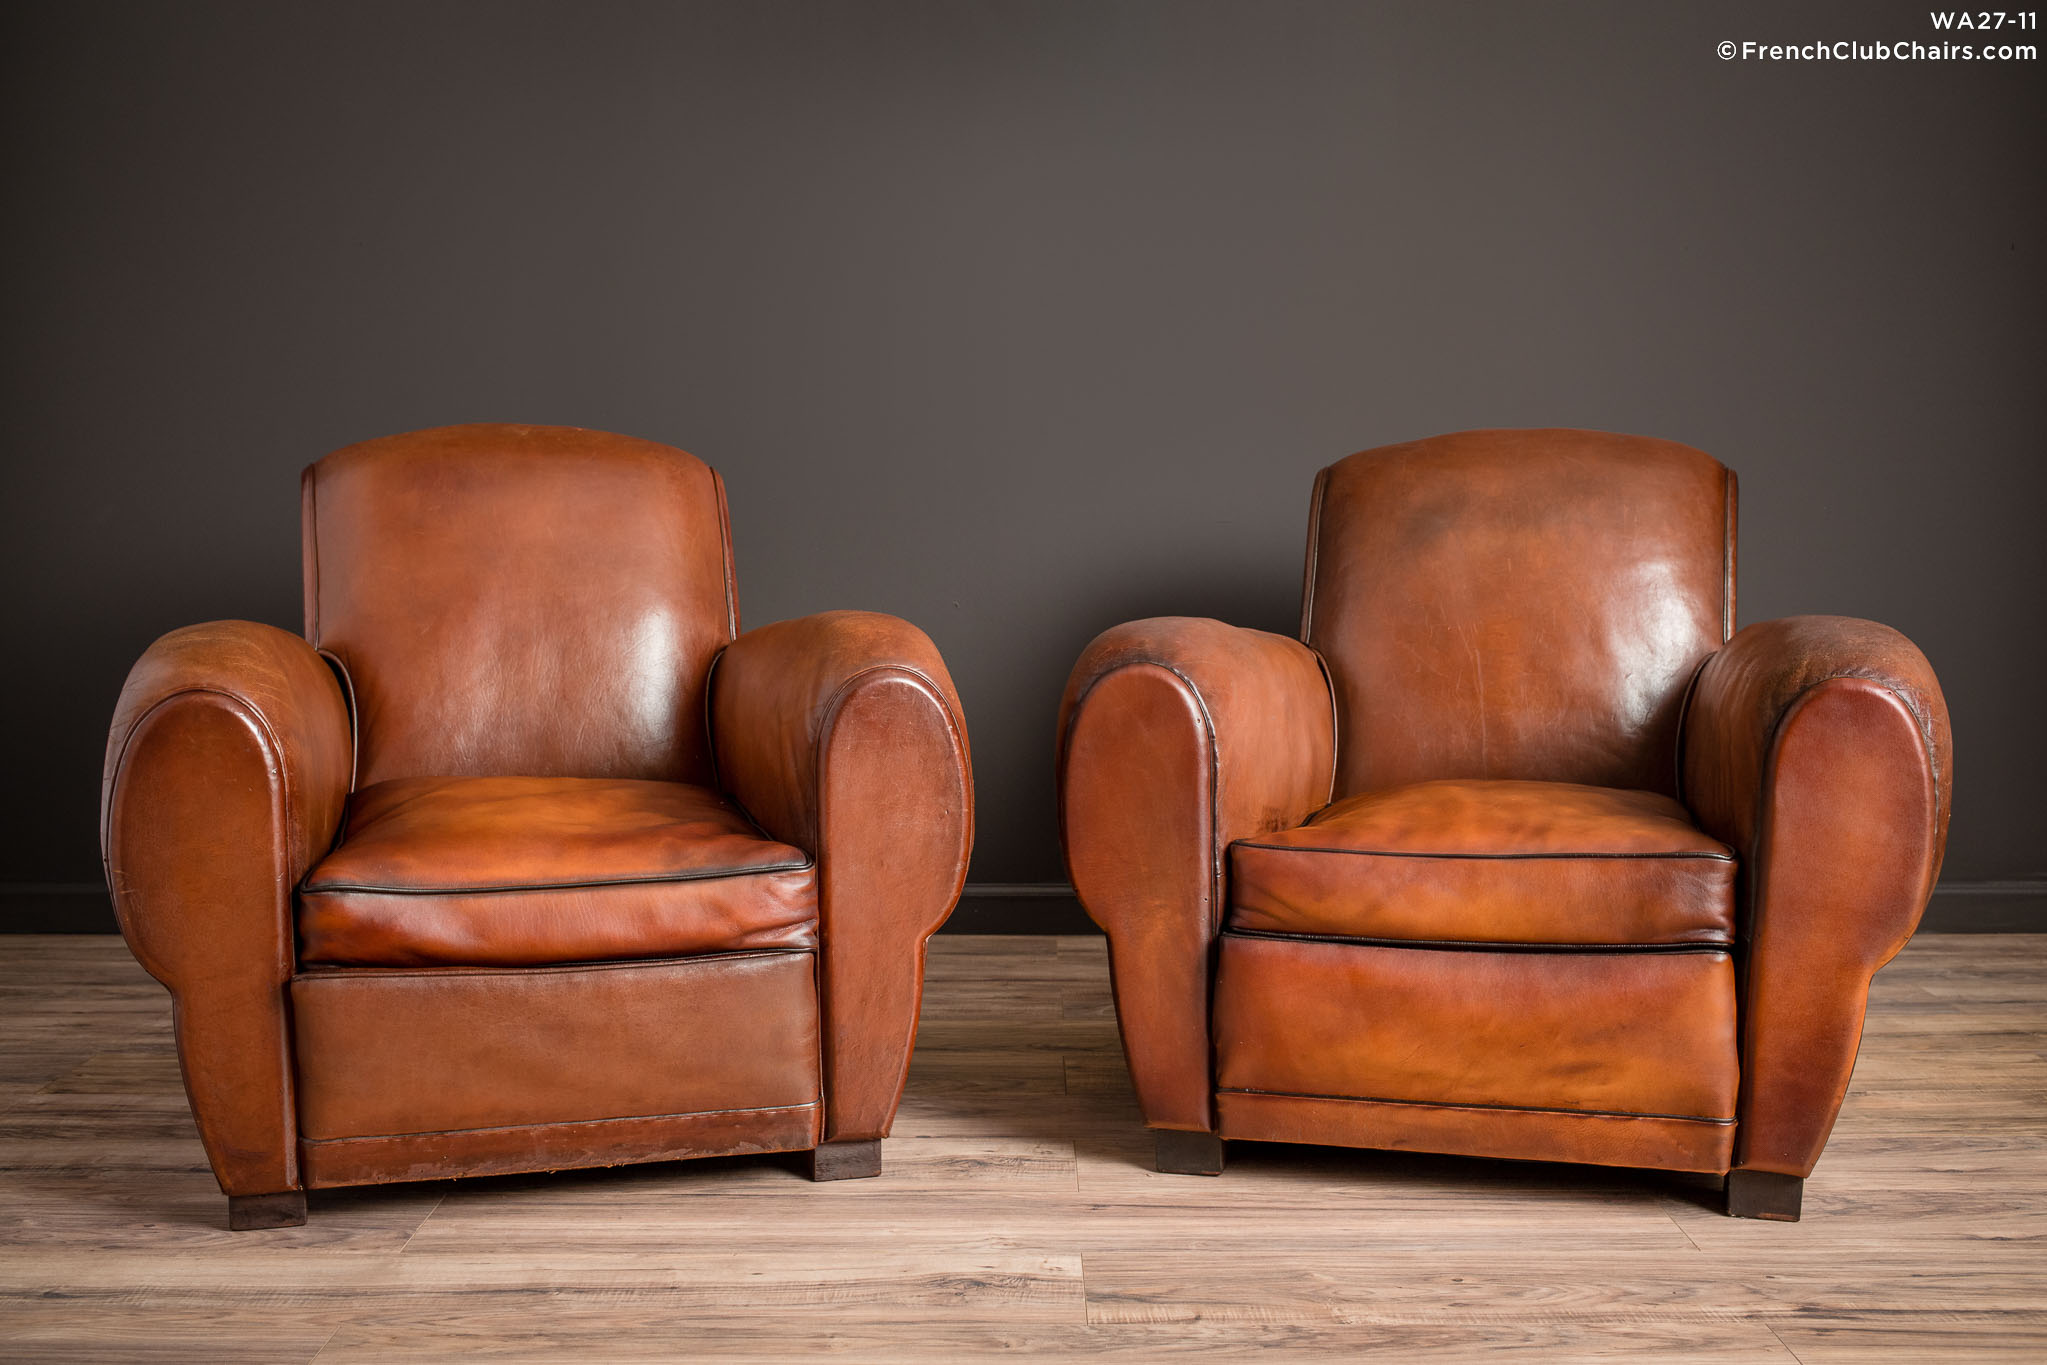 WA_27-11_Chatou_Rollback_Pair_R_1TQ-v01-williams-antiks-leather-french-club-chair-wa_fcccom